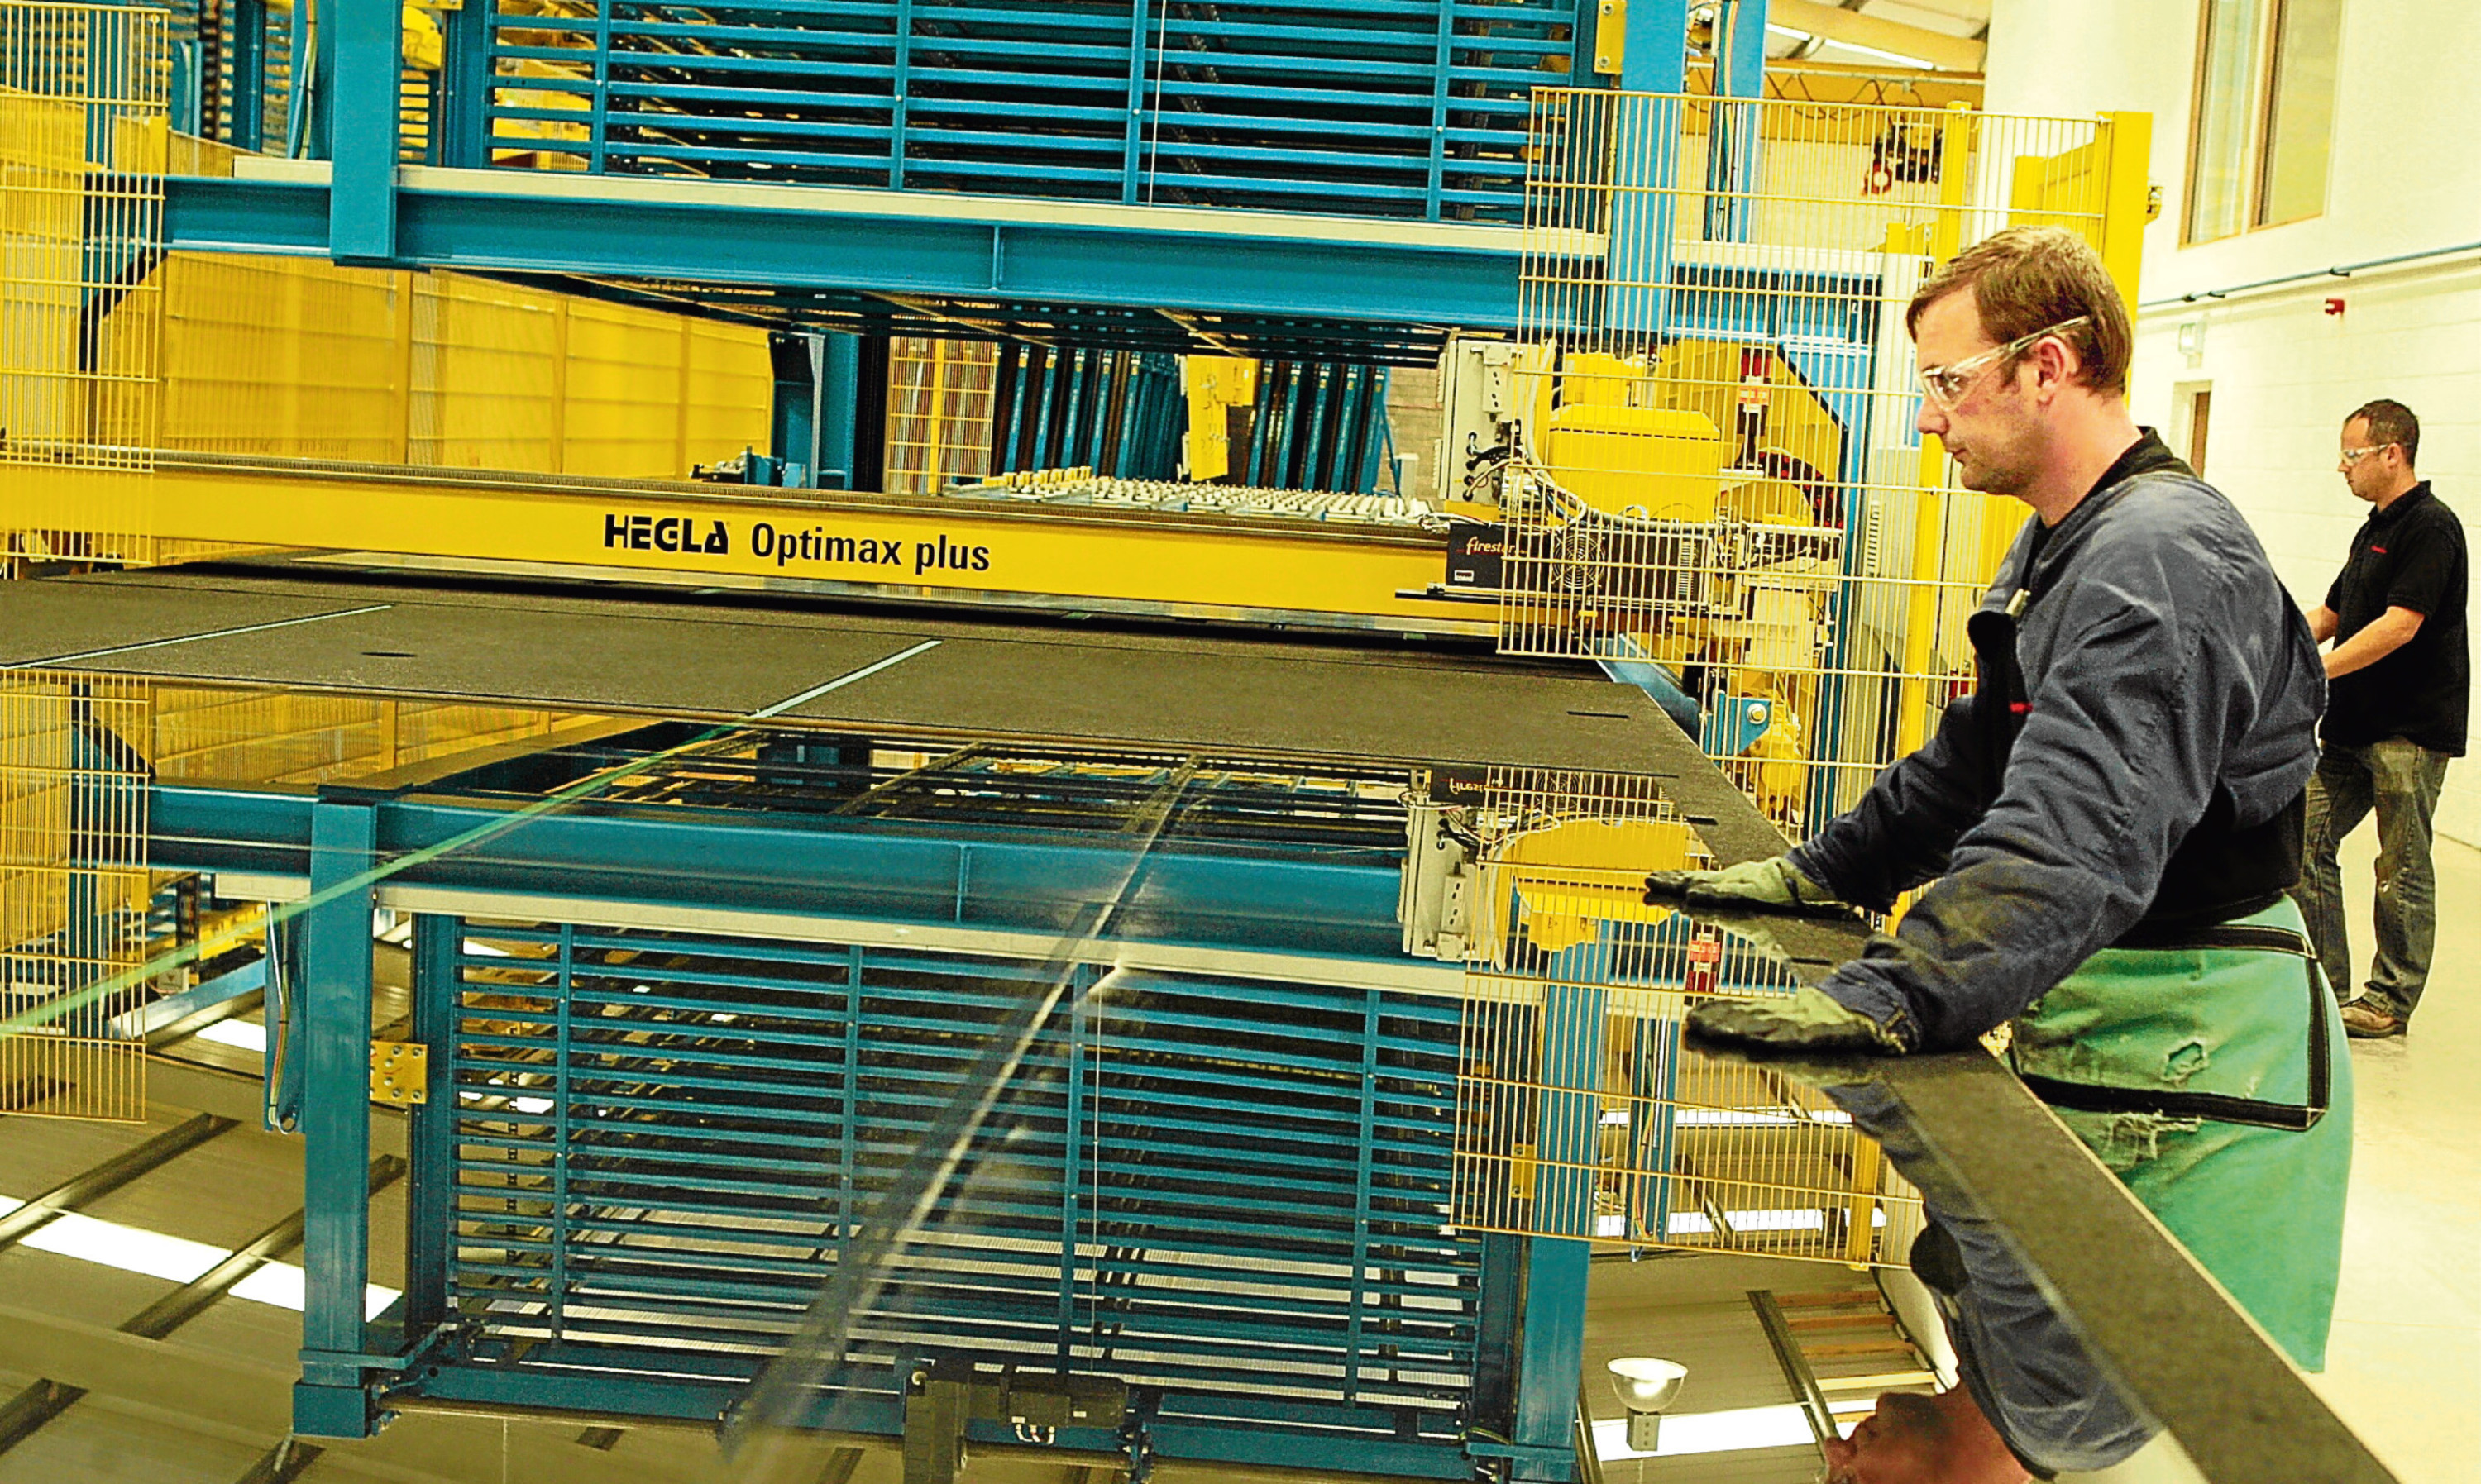 A Ravensby Glass employee examines a glass panel